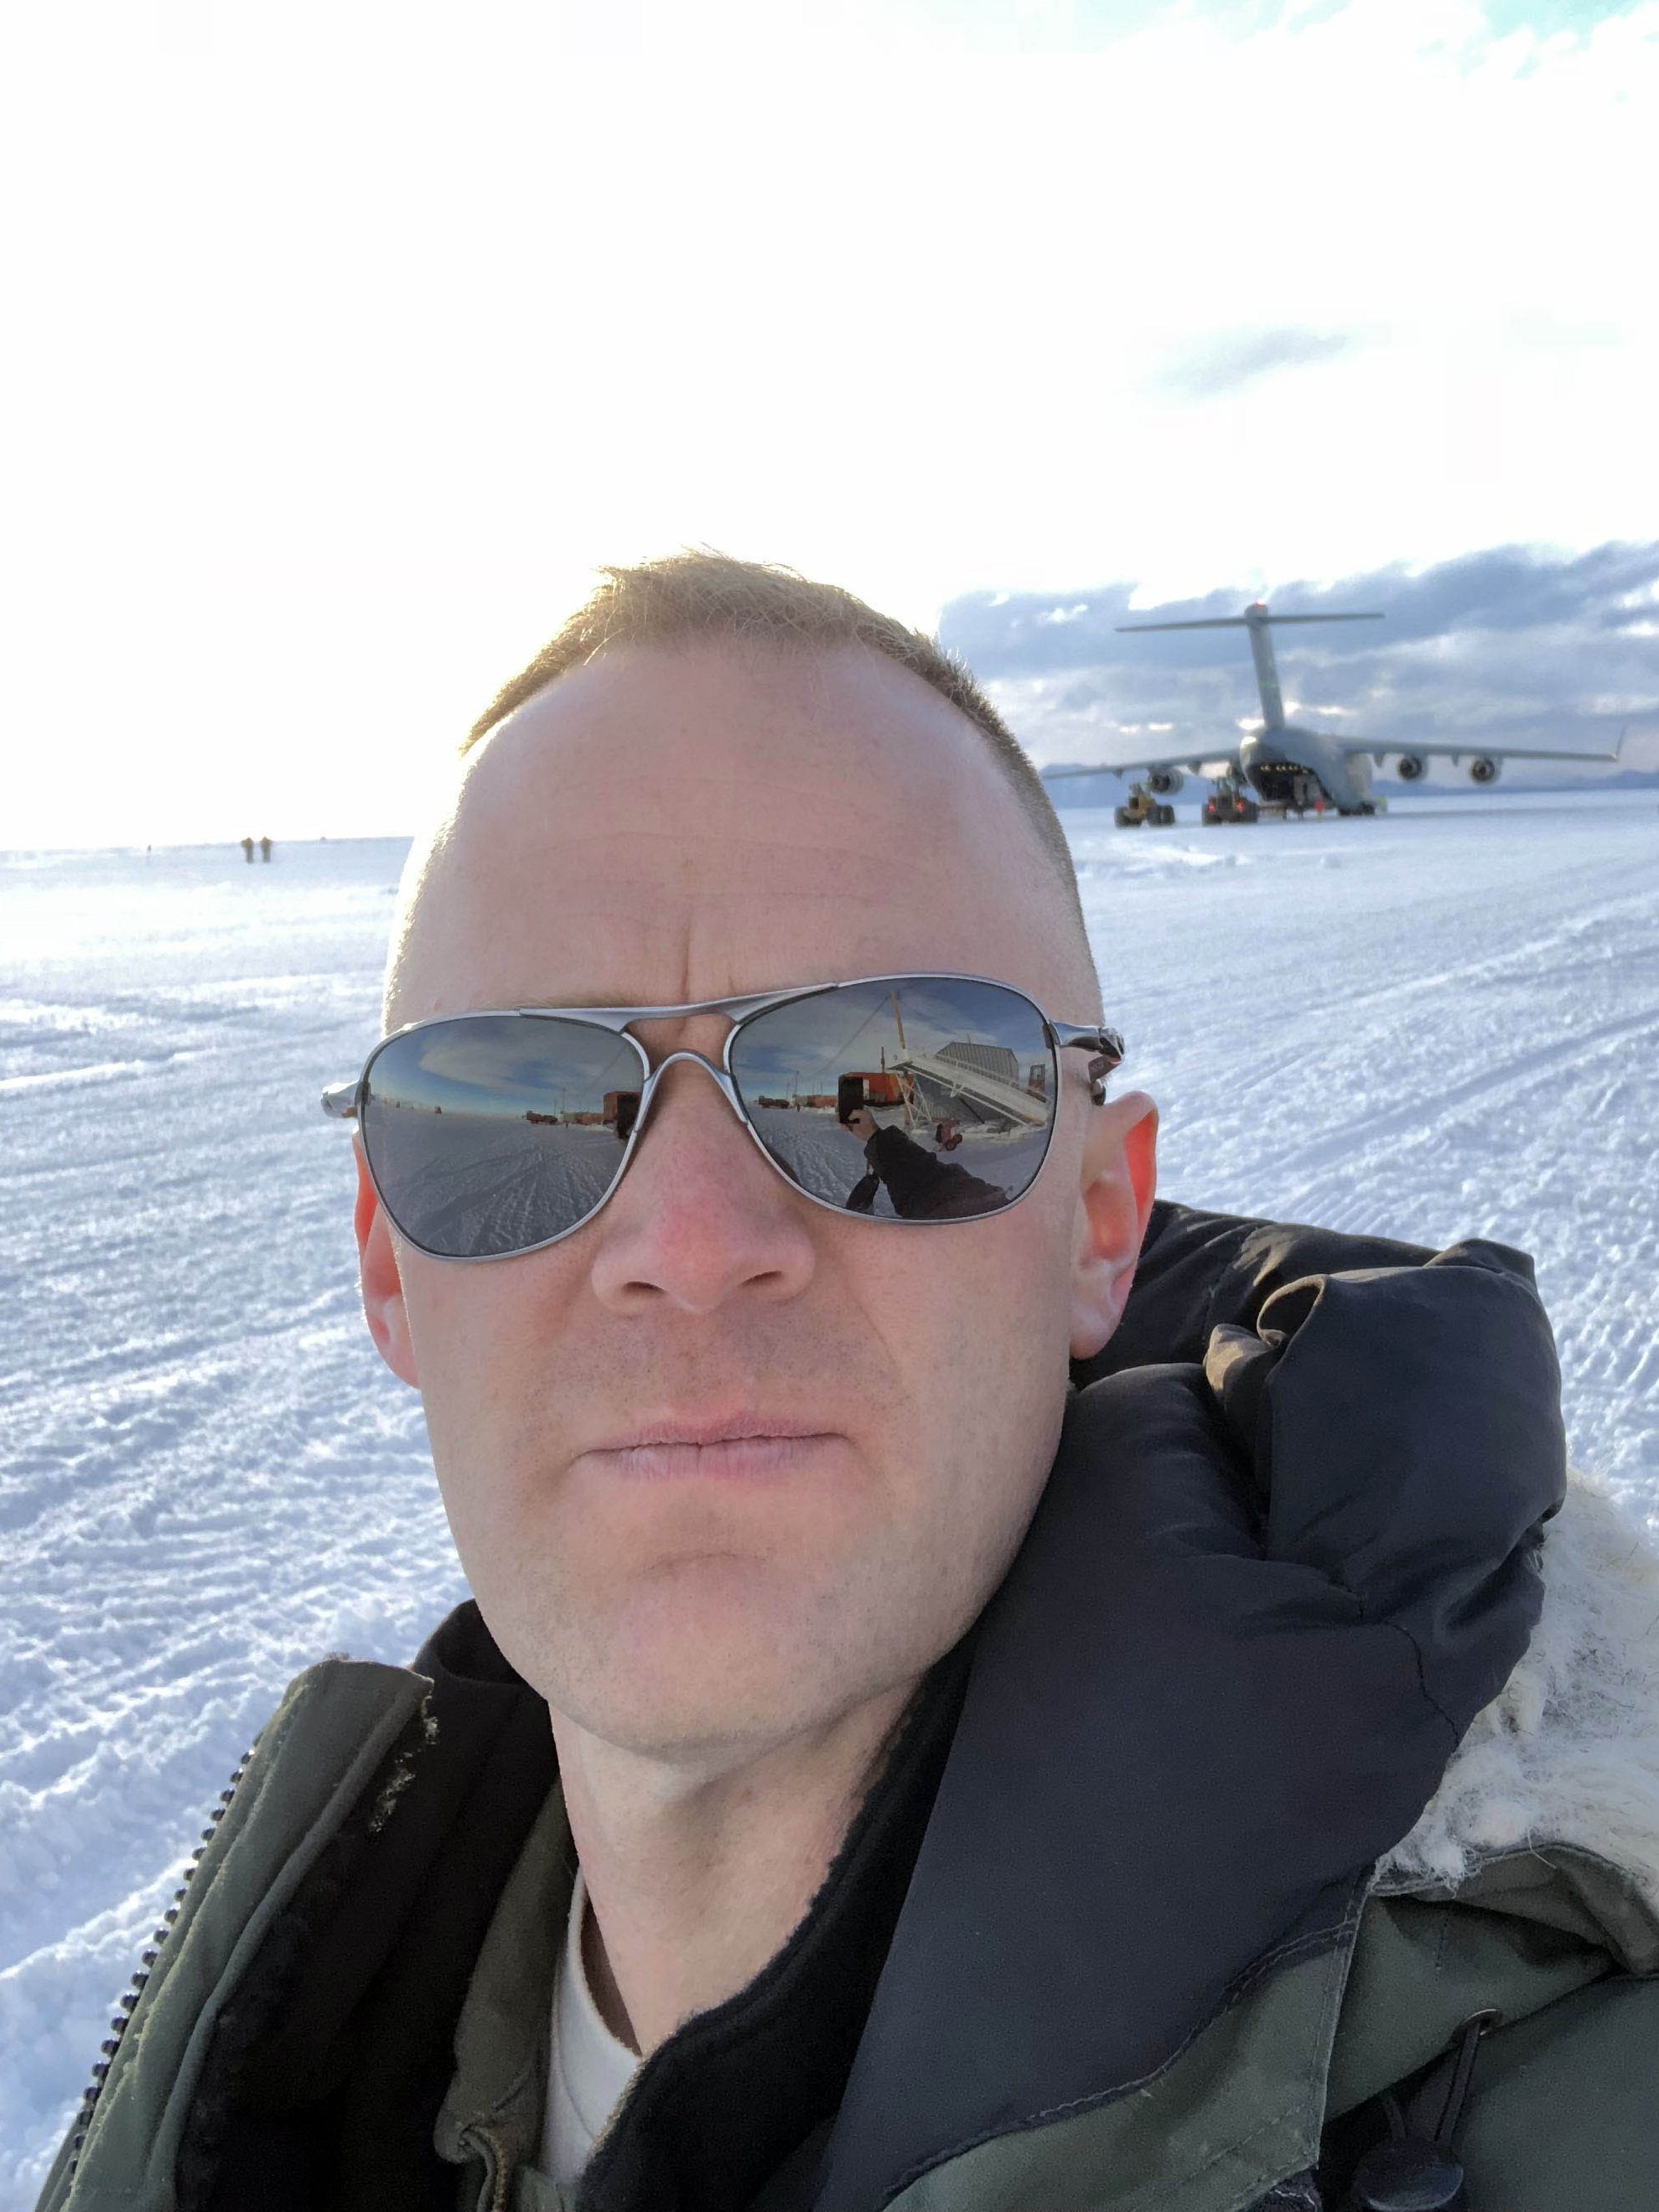 Matt stands on the flightline, 12 miles outside of McMurdo Station. In order to get there, people have to drive over sea ice onto a glacier. Pictured in the background is a USAF C-17.